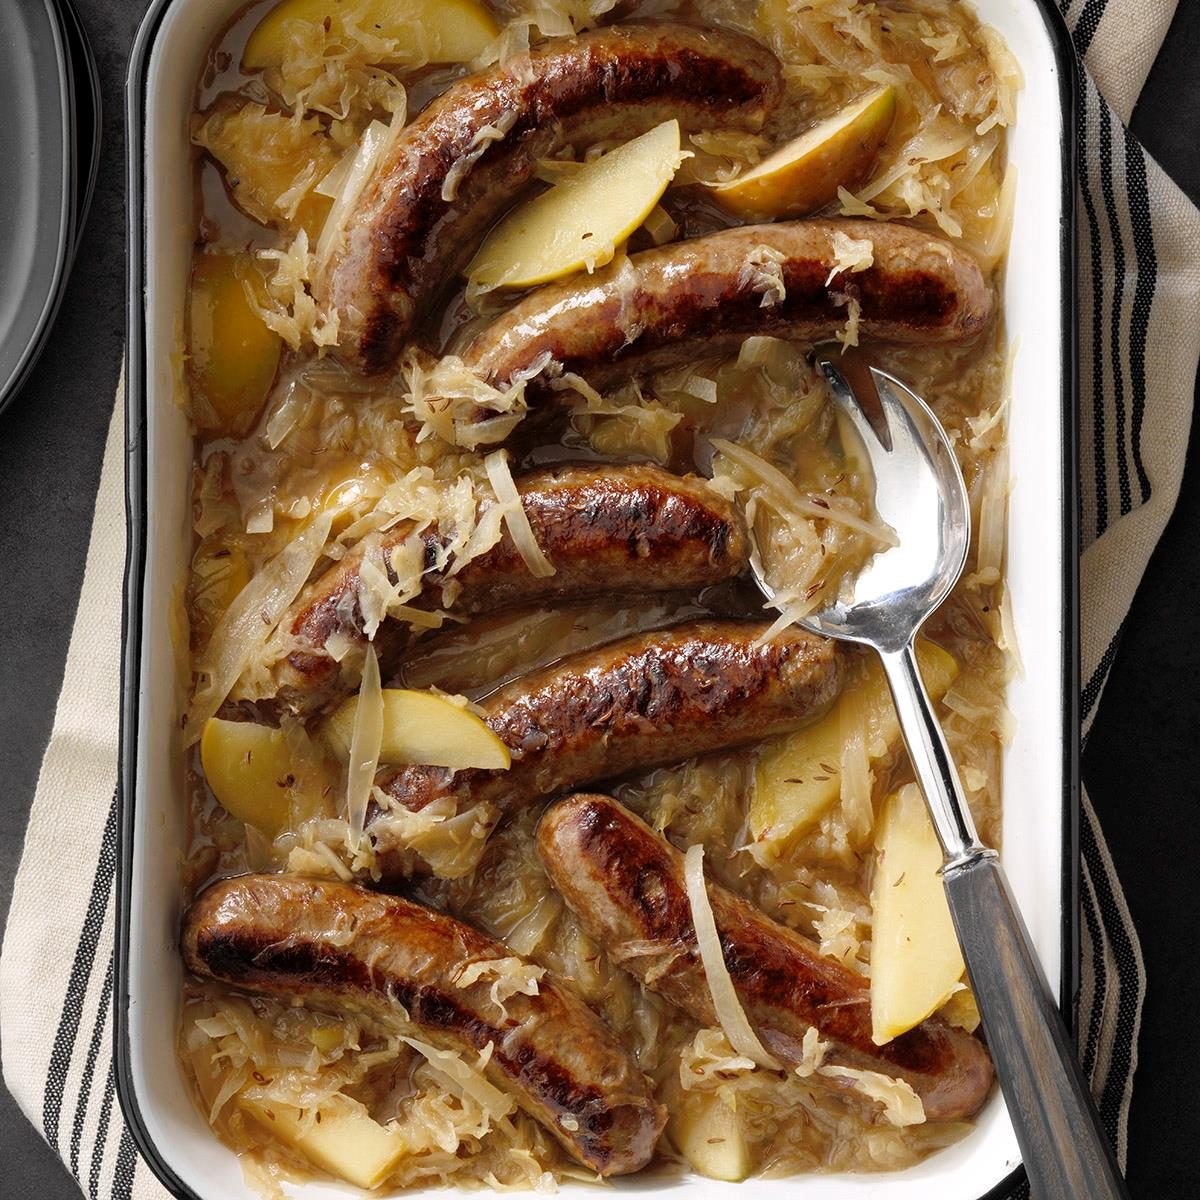 Day 1: Slow-Cooker German Bratwurst